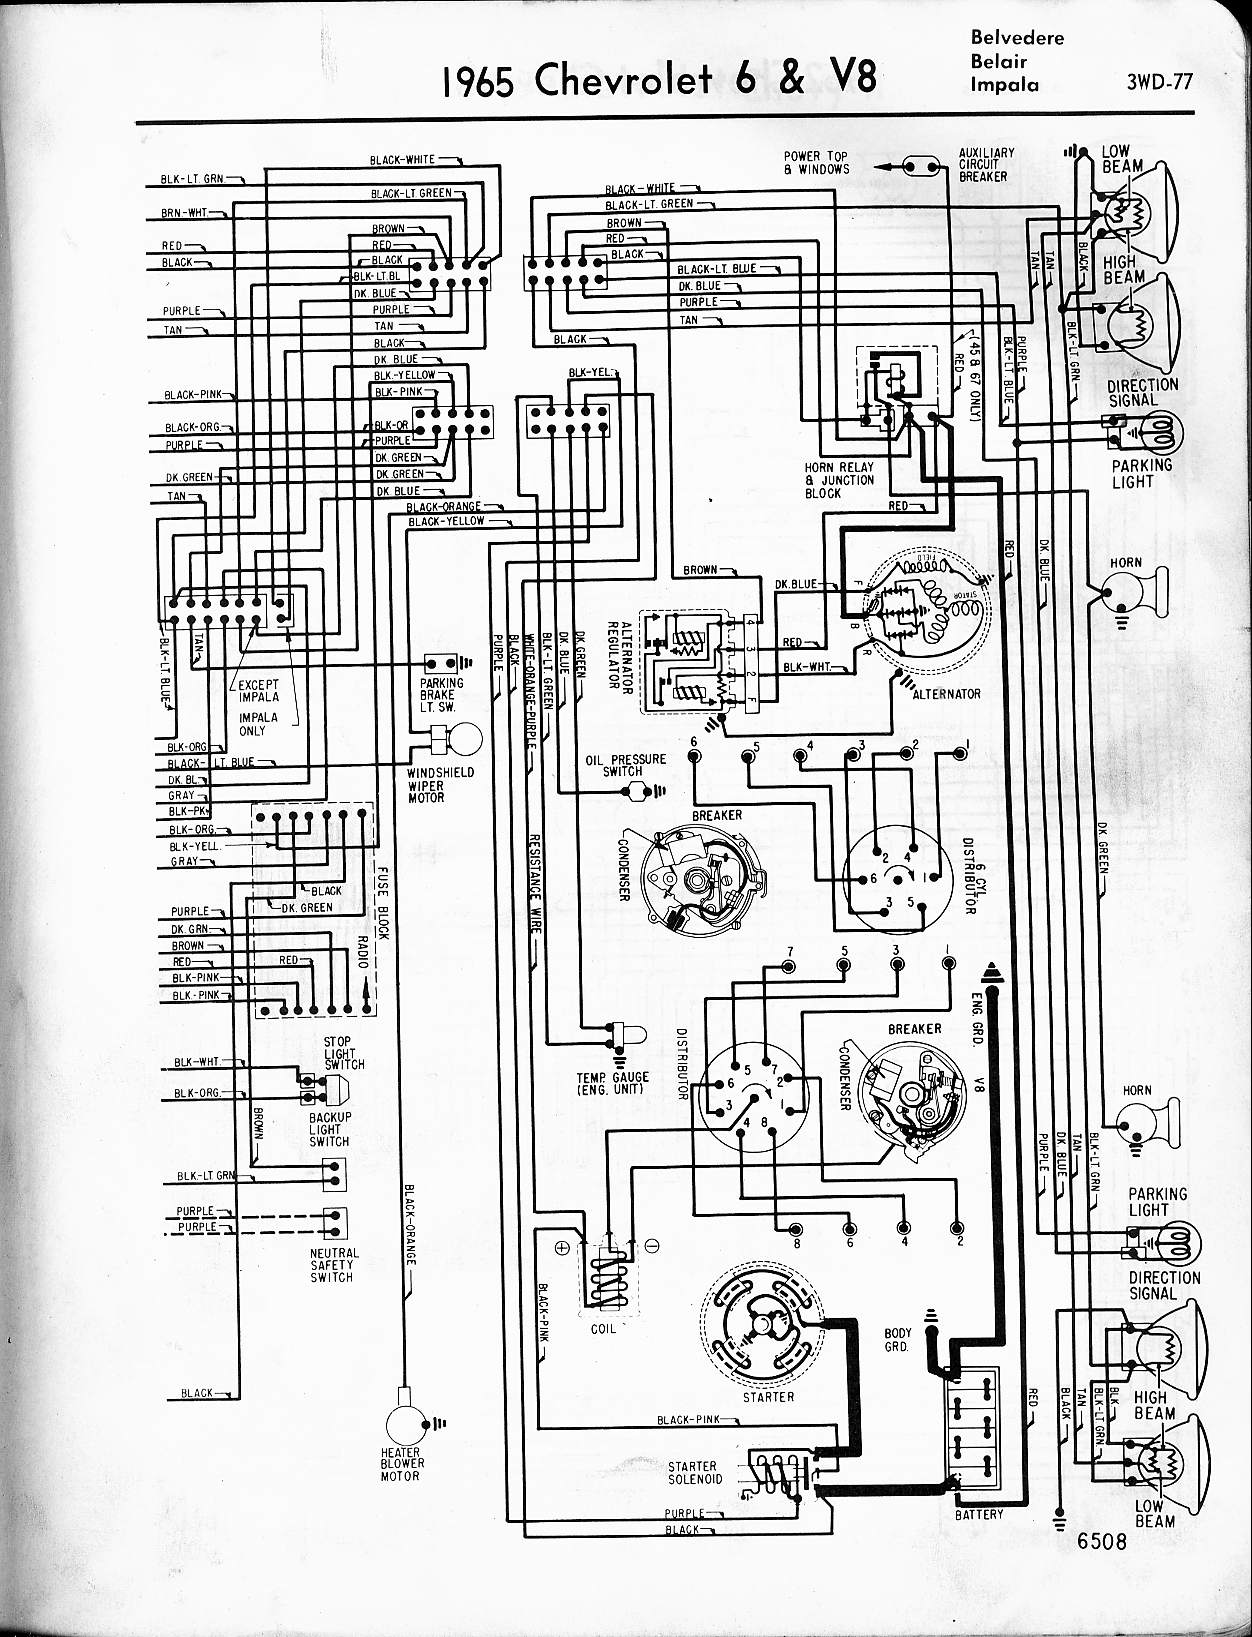 66 chevelle wiring diagram wiring diagram u2022 rh msblog co 1970 Nova  Steering Column Diagram 1970 Nova Steering Column Diagram